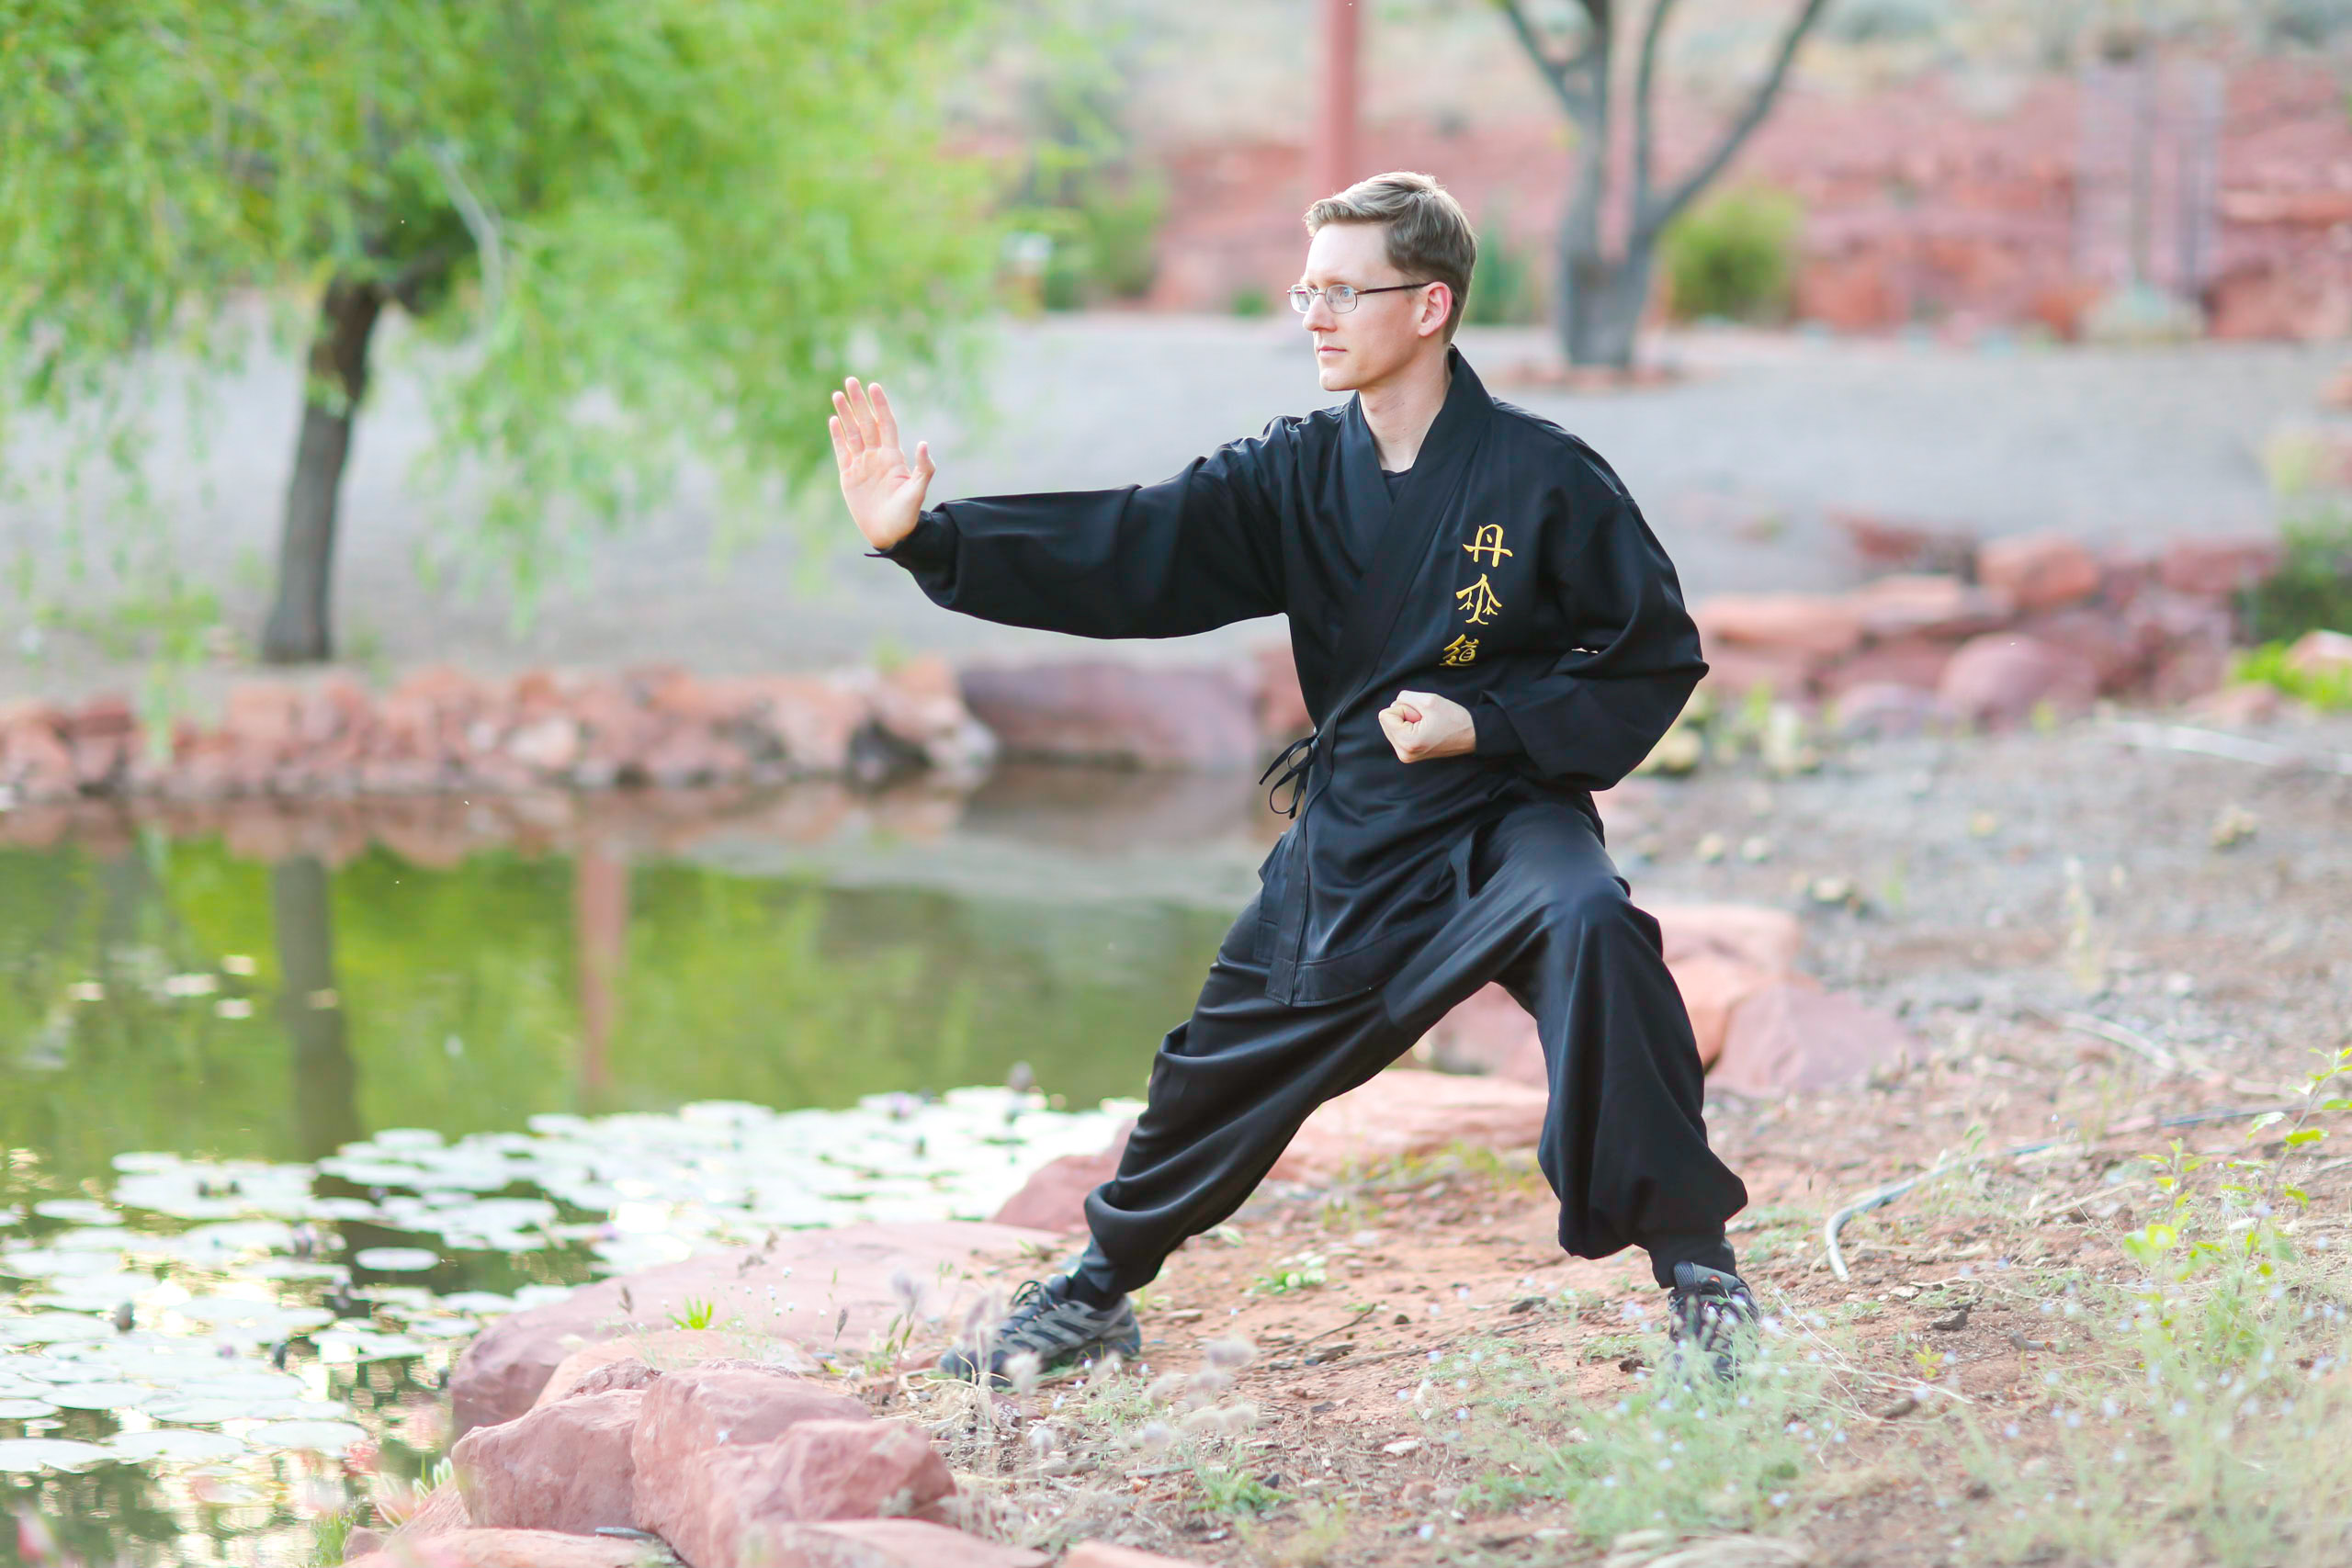 Instructor Travis guiding tai chi